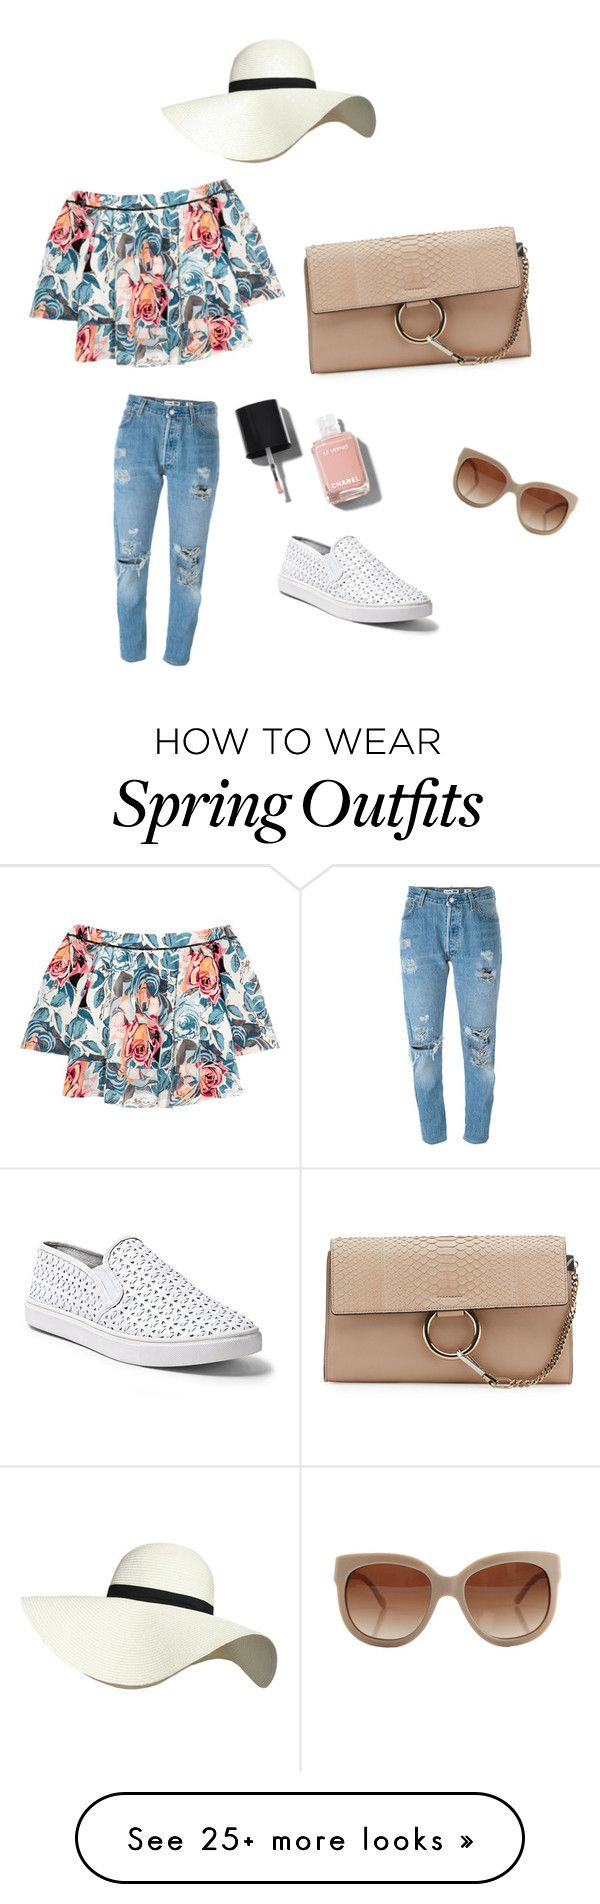 How to wear: Spring Outfits